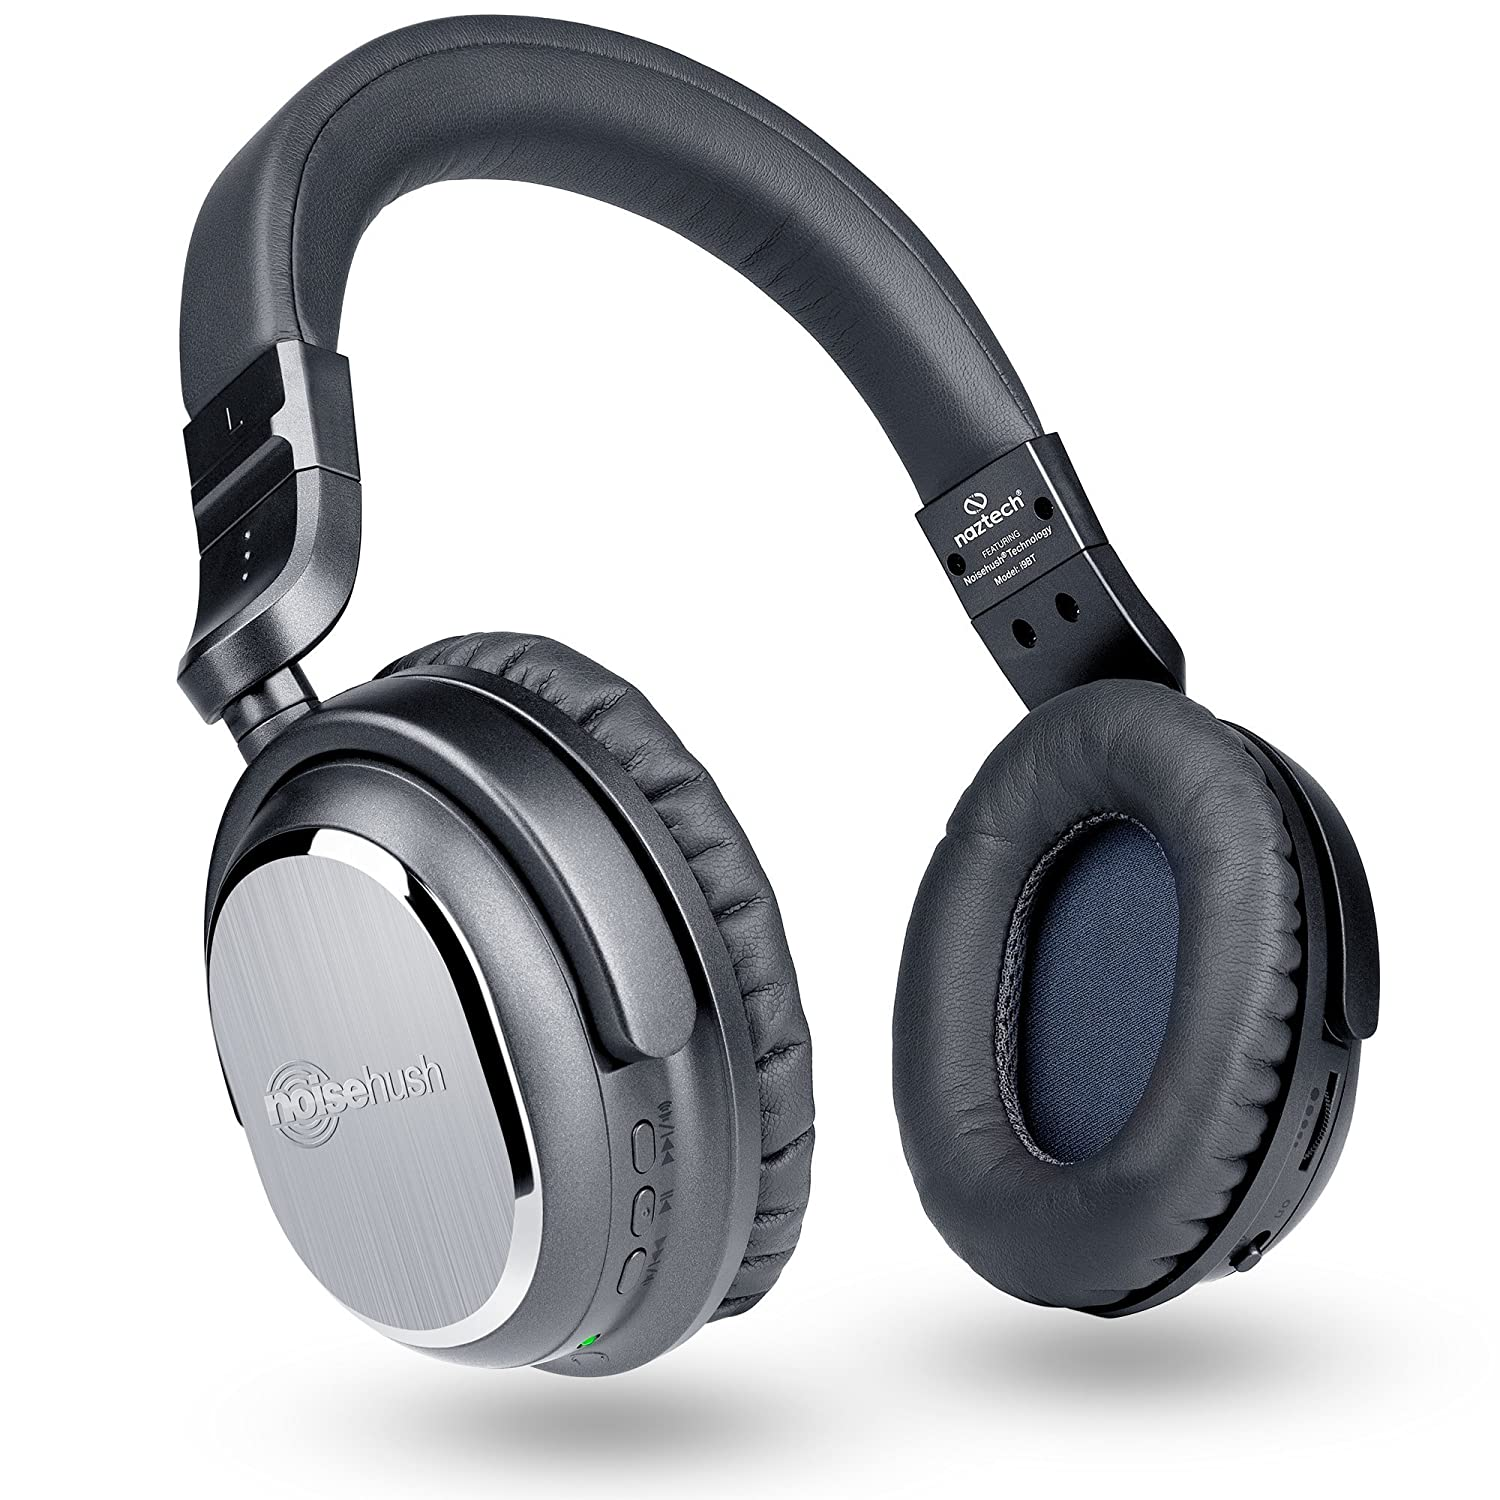 Naztech i9BT Over-Ear Active Noise Canceling Headphones